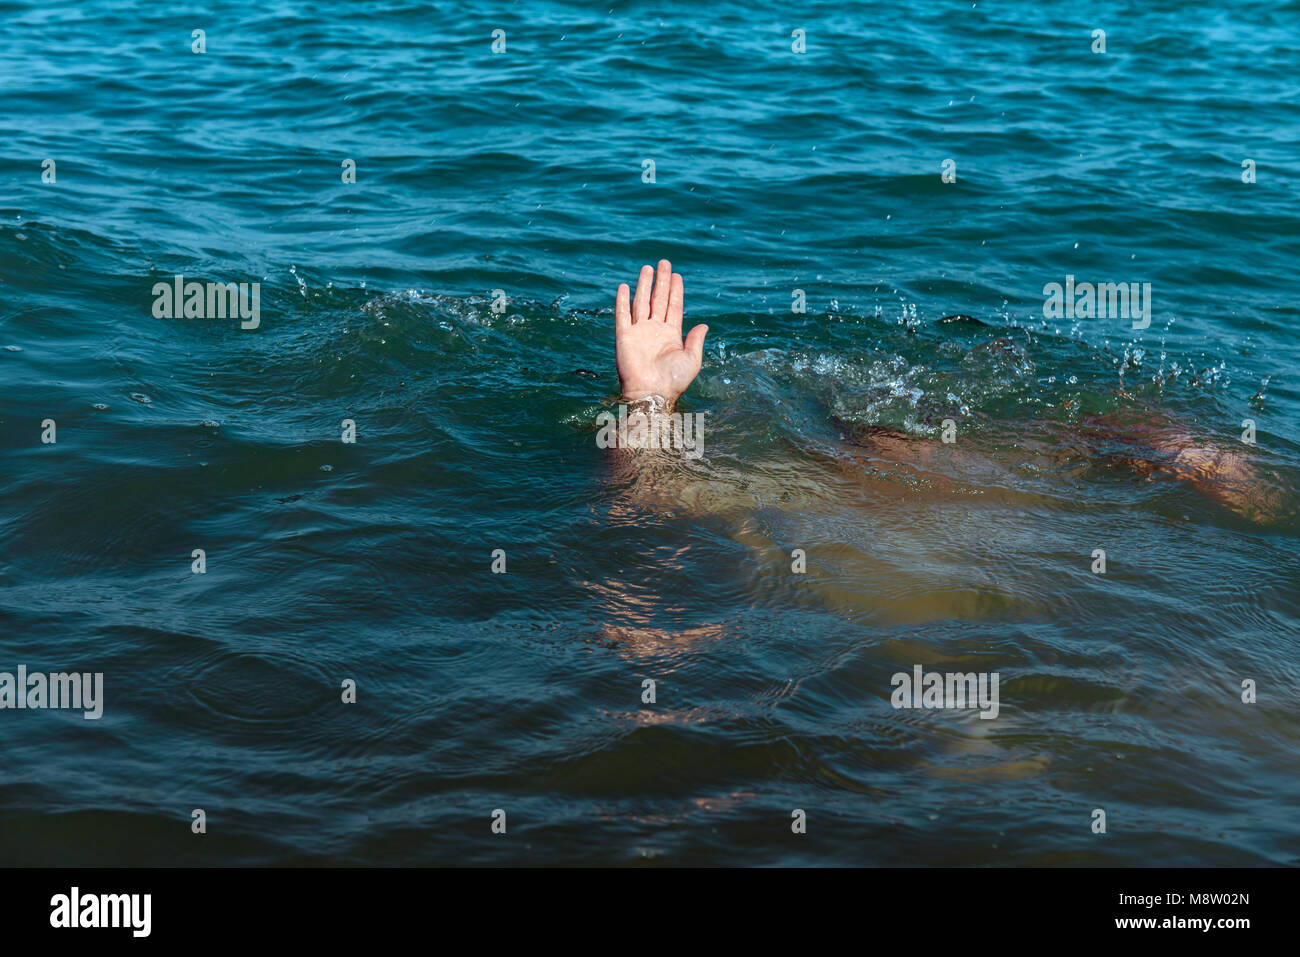 A sinking person the salvation of a drowning man